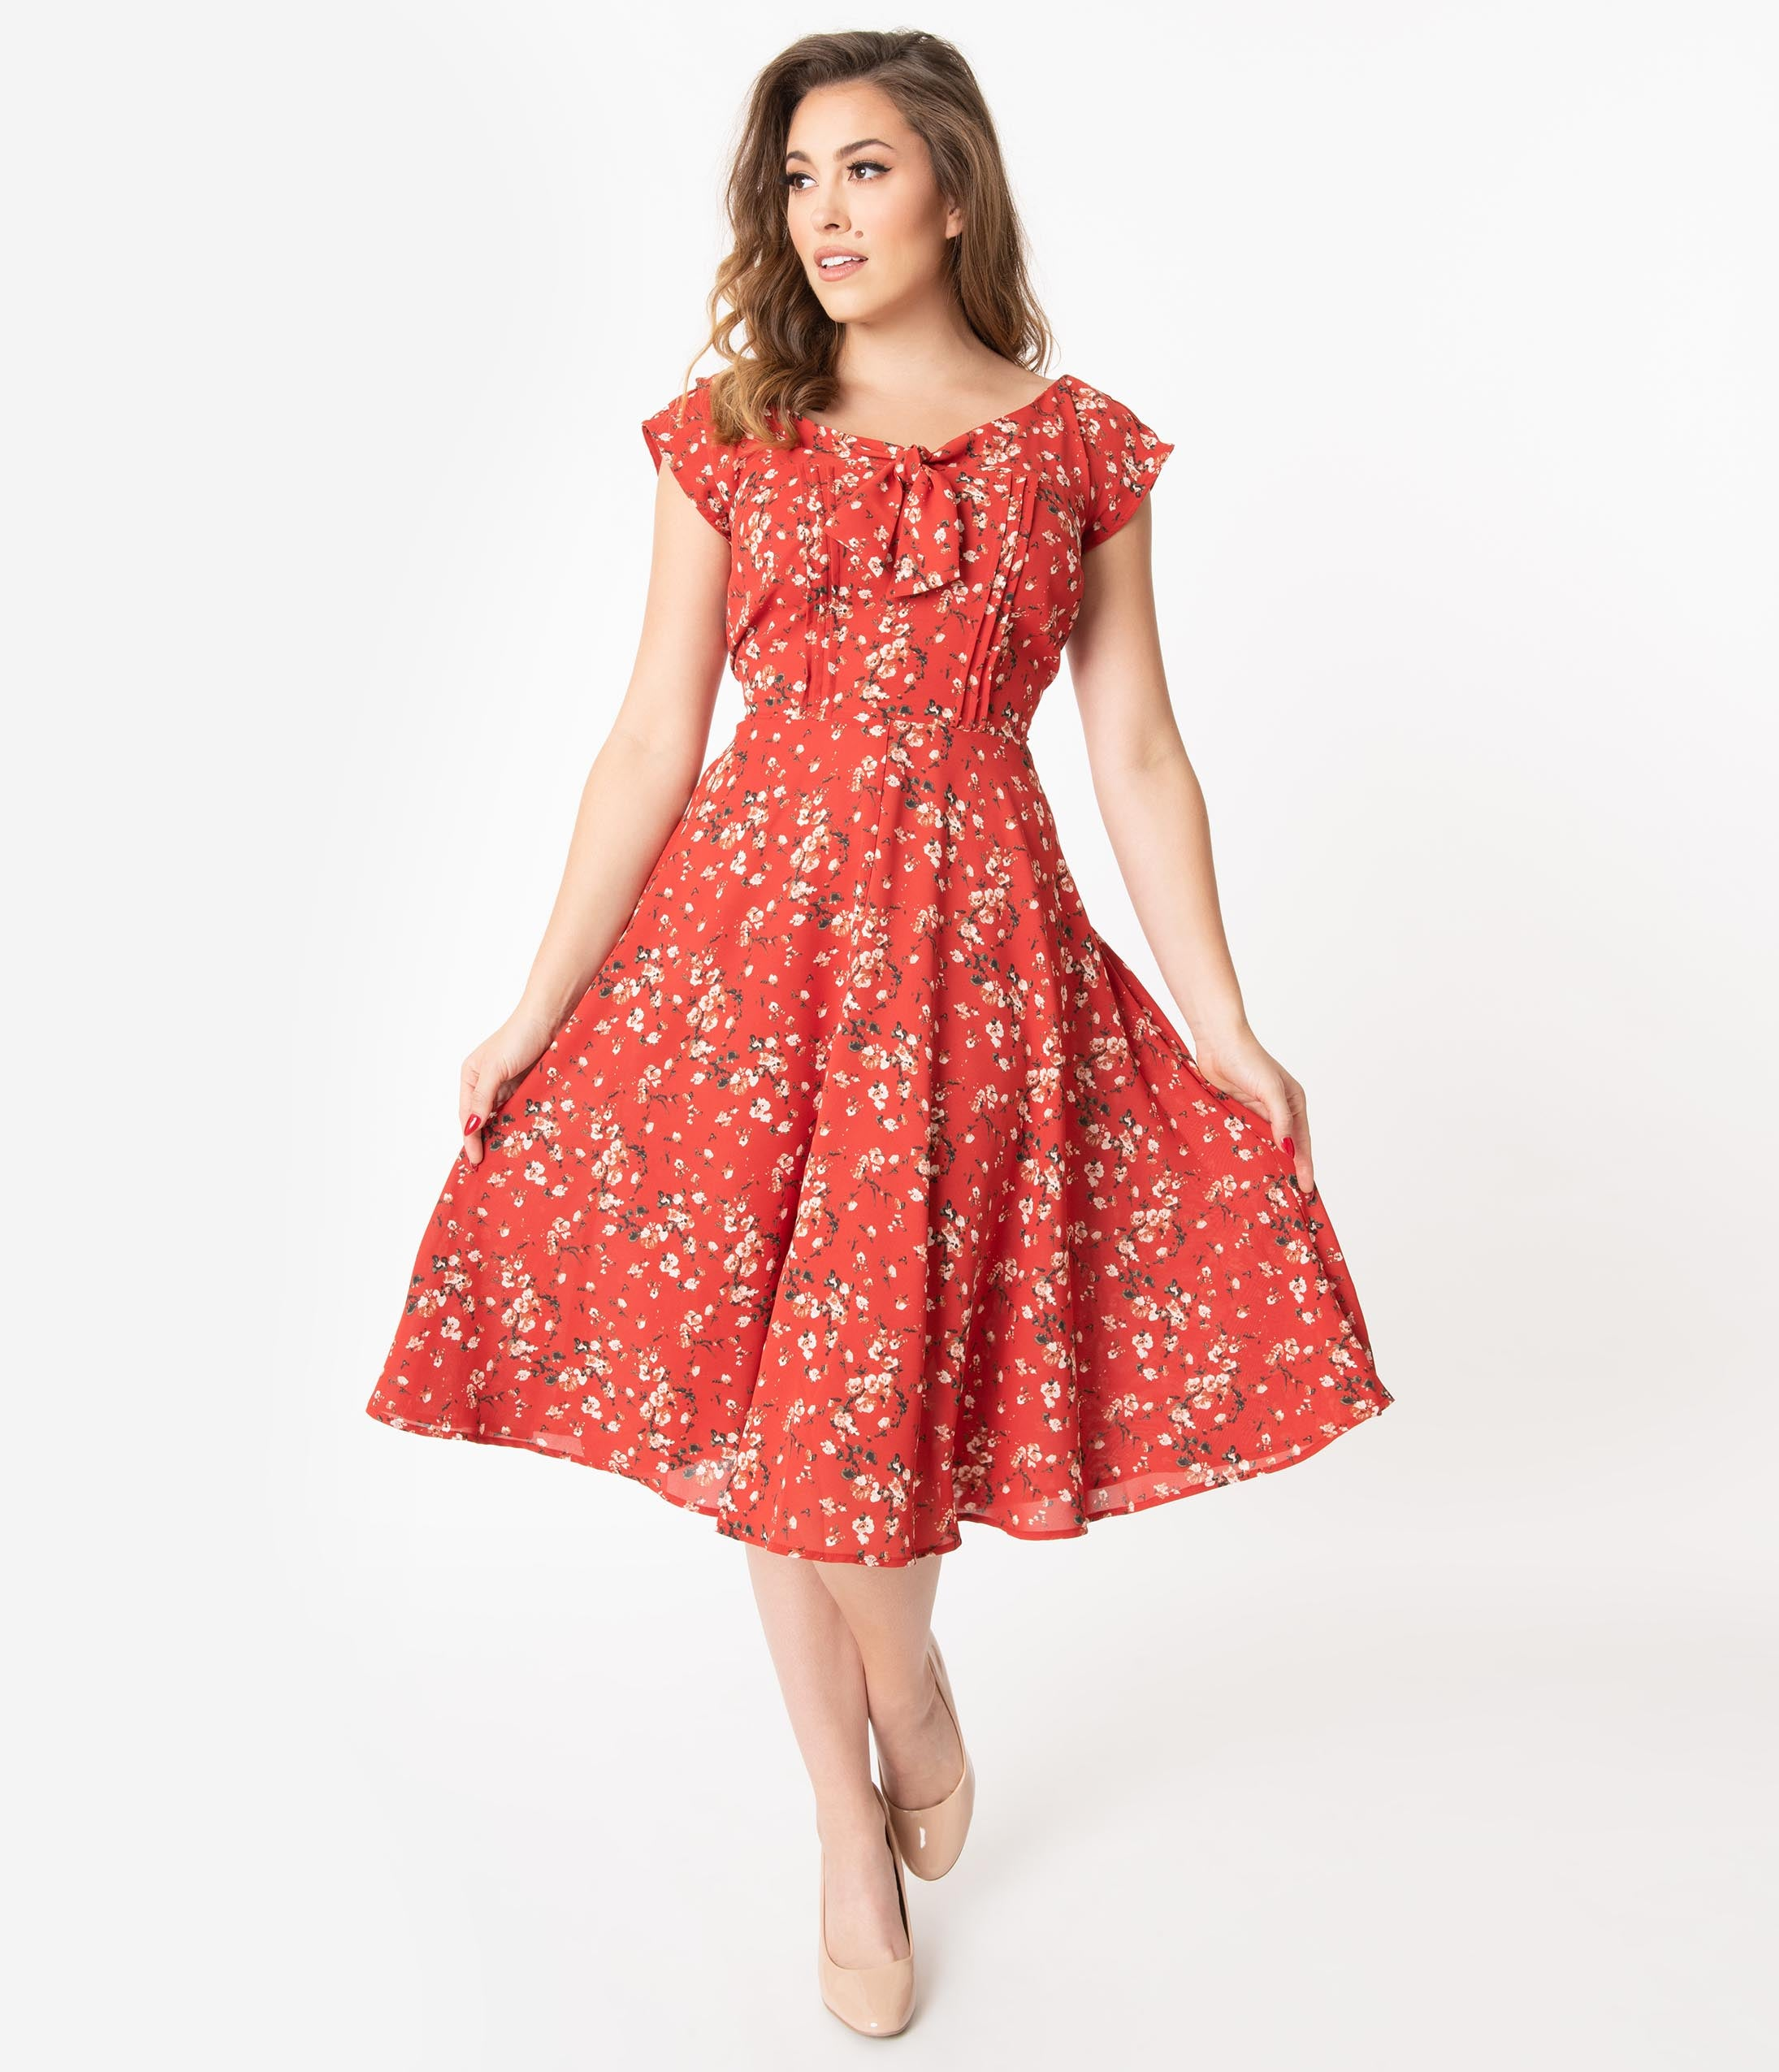 500 Vintage Style Dresses for Sale | Vintage Inspired Dresses Unique Vintage 1940S Style Red Floral Print Havilland Dress $88.00 AT vintagedancer.com